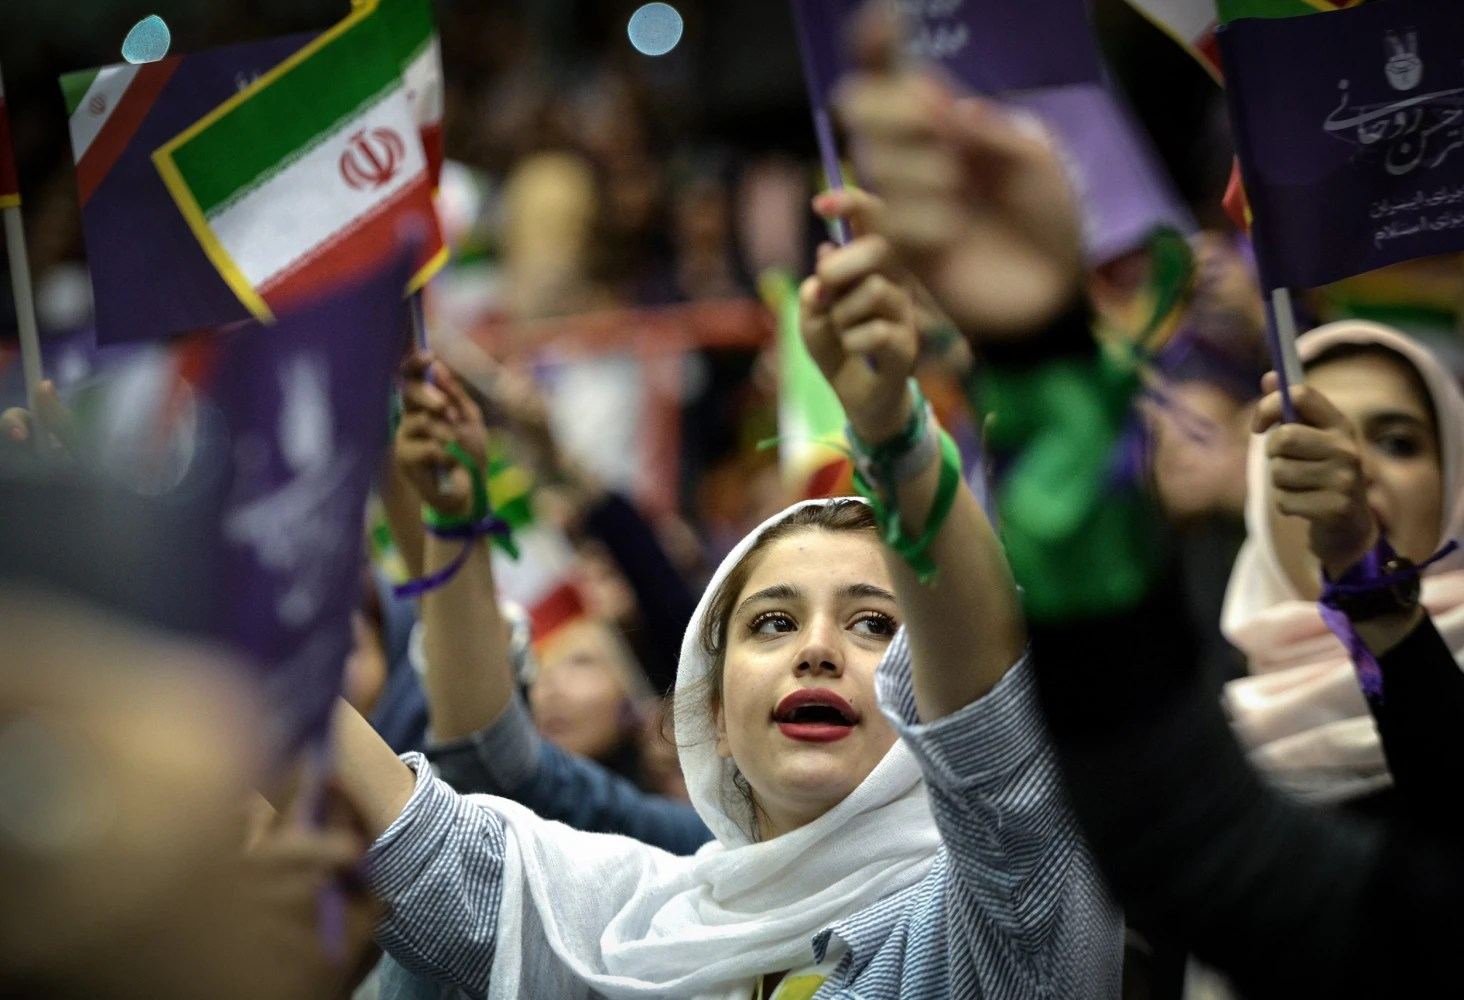 Turnout is key for Iran's election